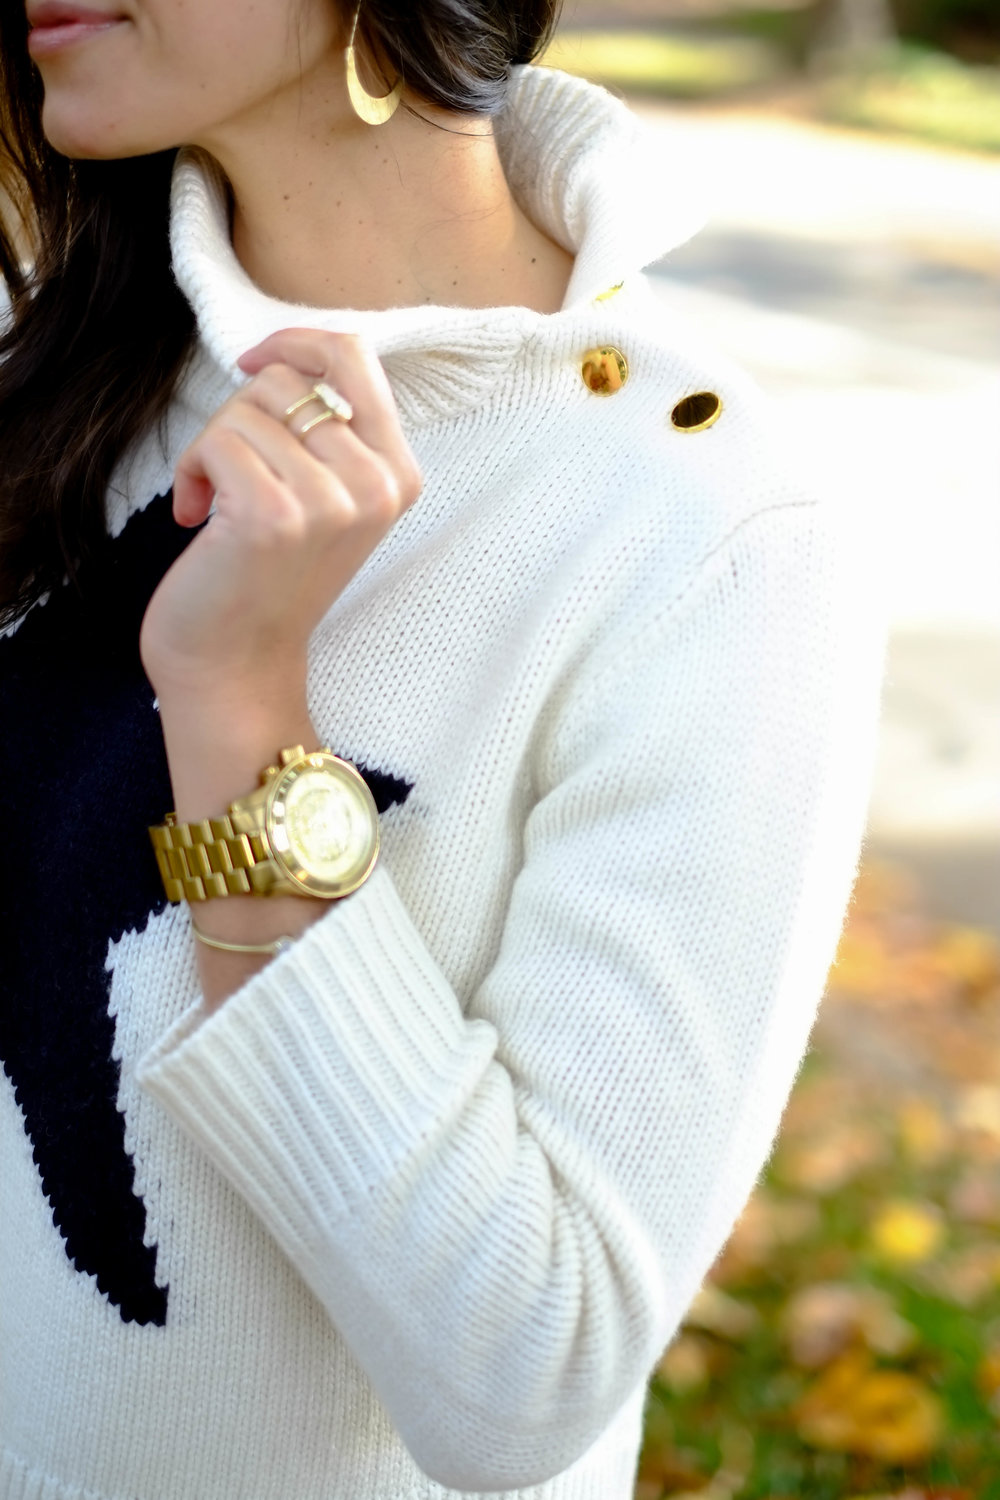 Michael-kors-gold-runway-watch-kendra-scott-ring-lauren-schwaiger-style-blog.jpg